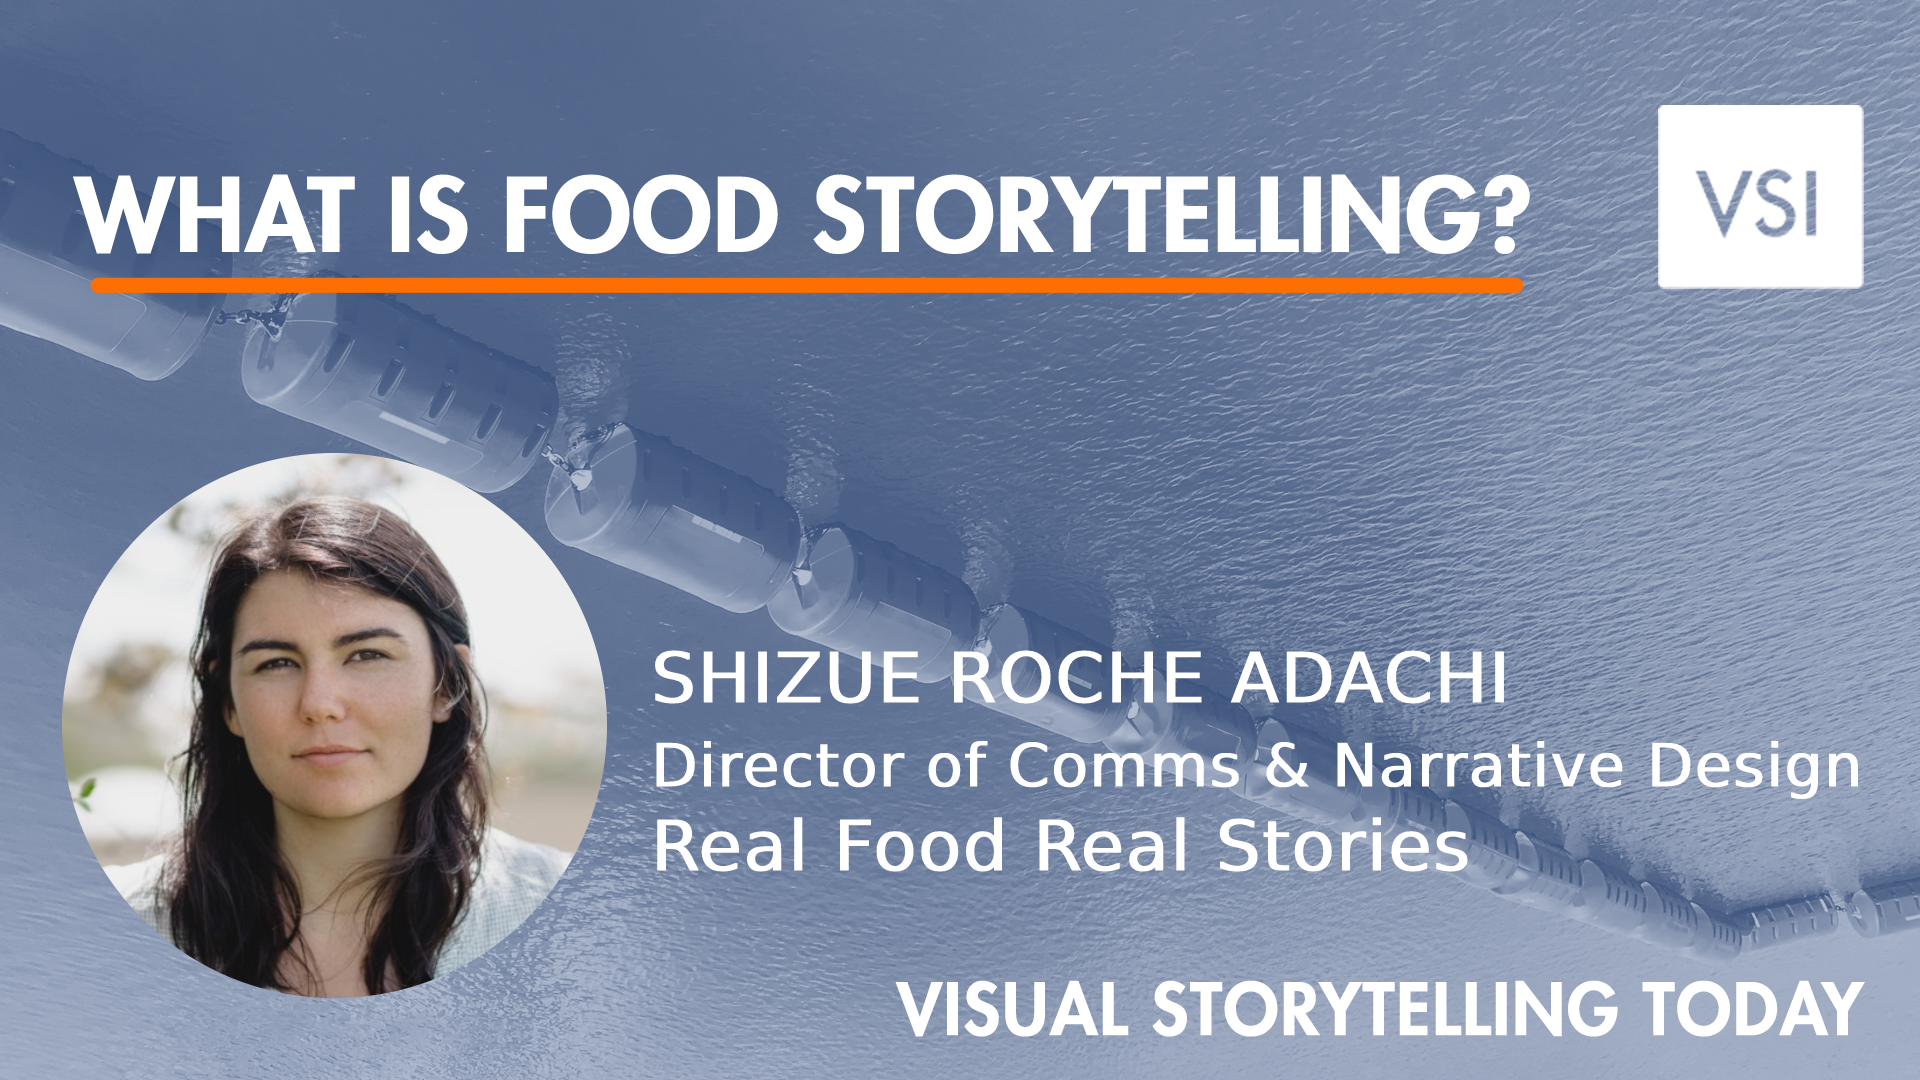 What is food storytelling?